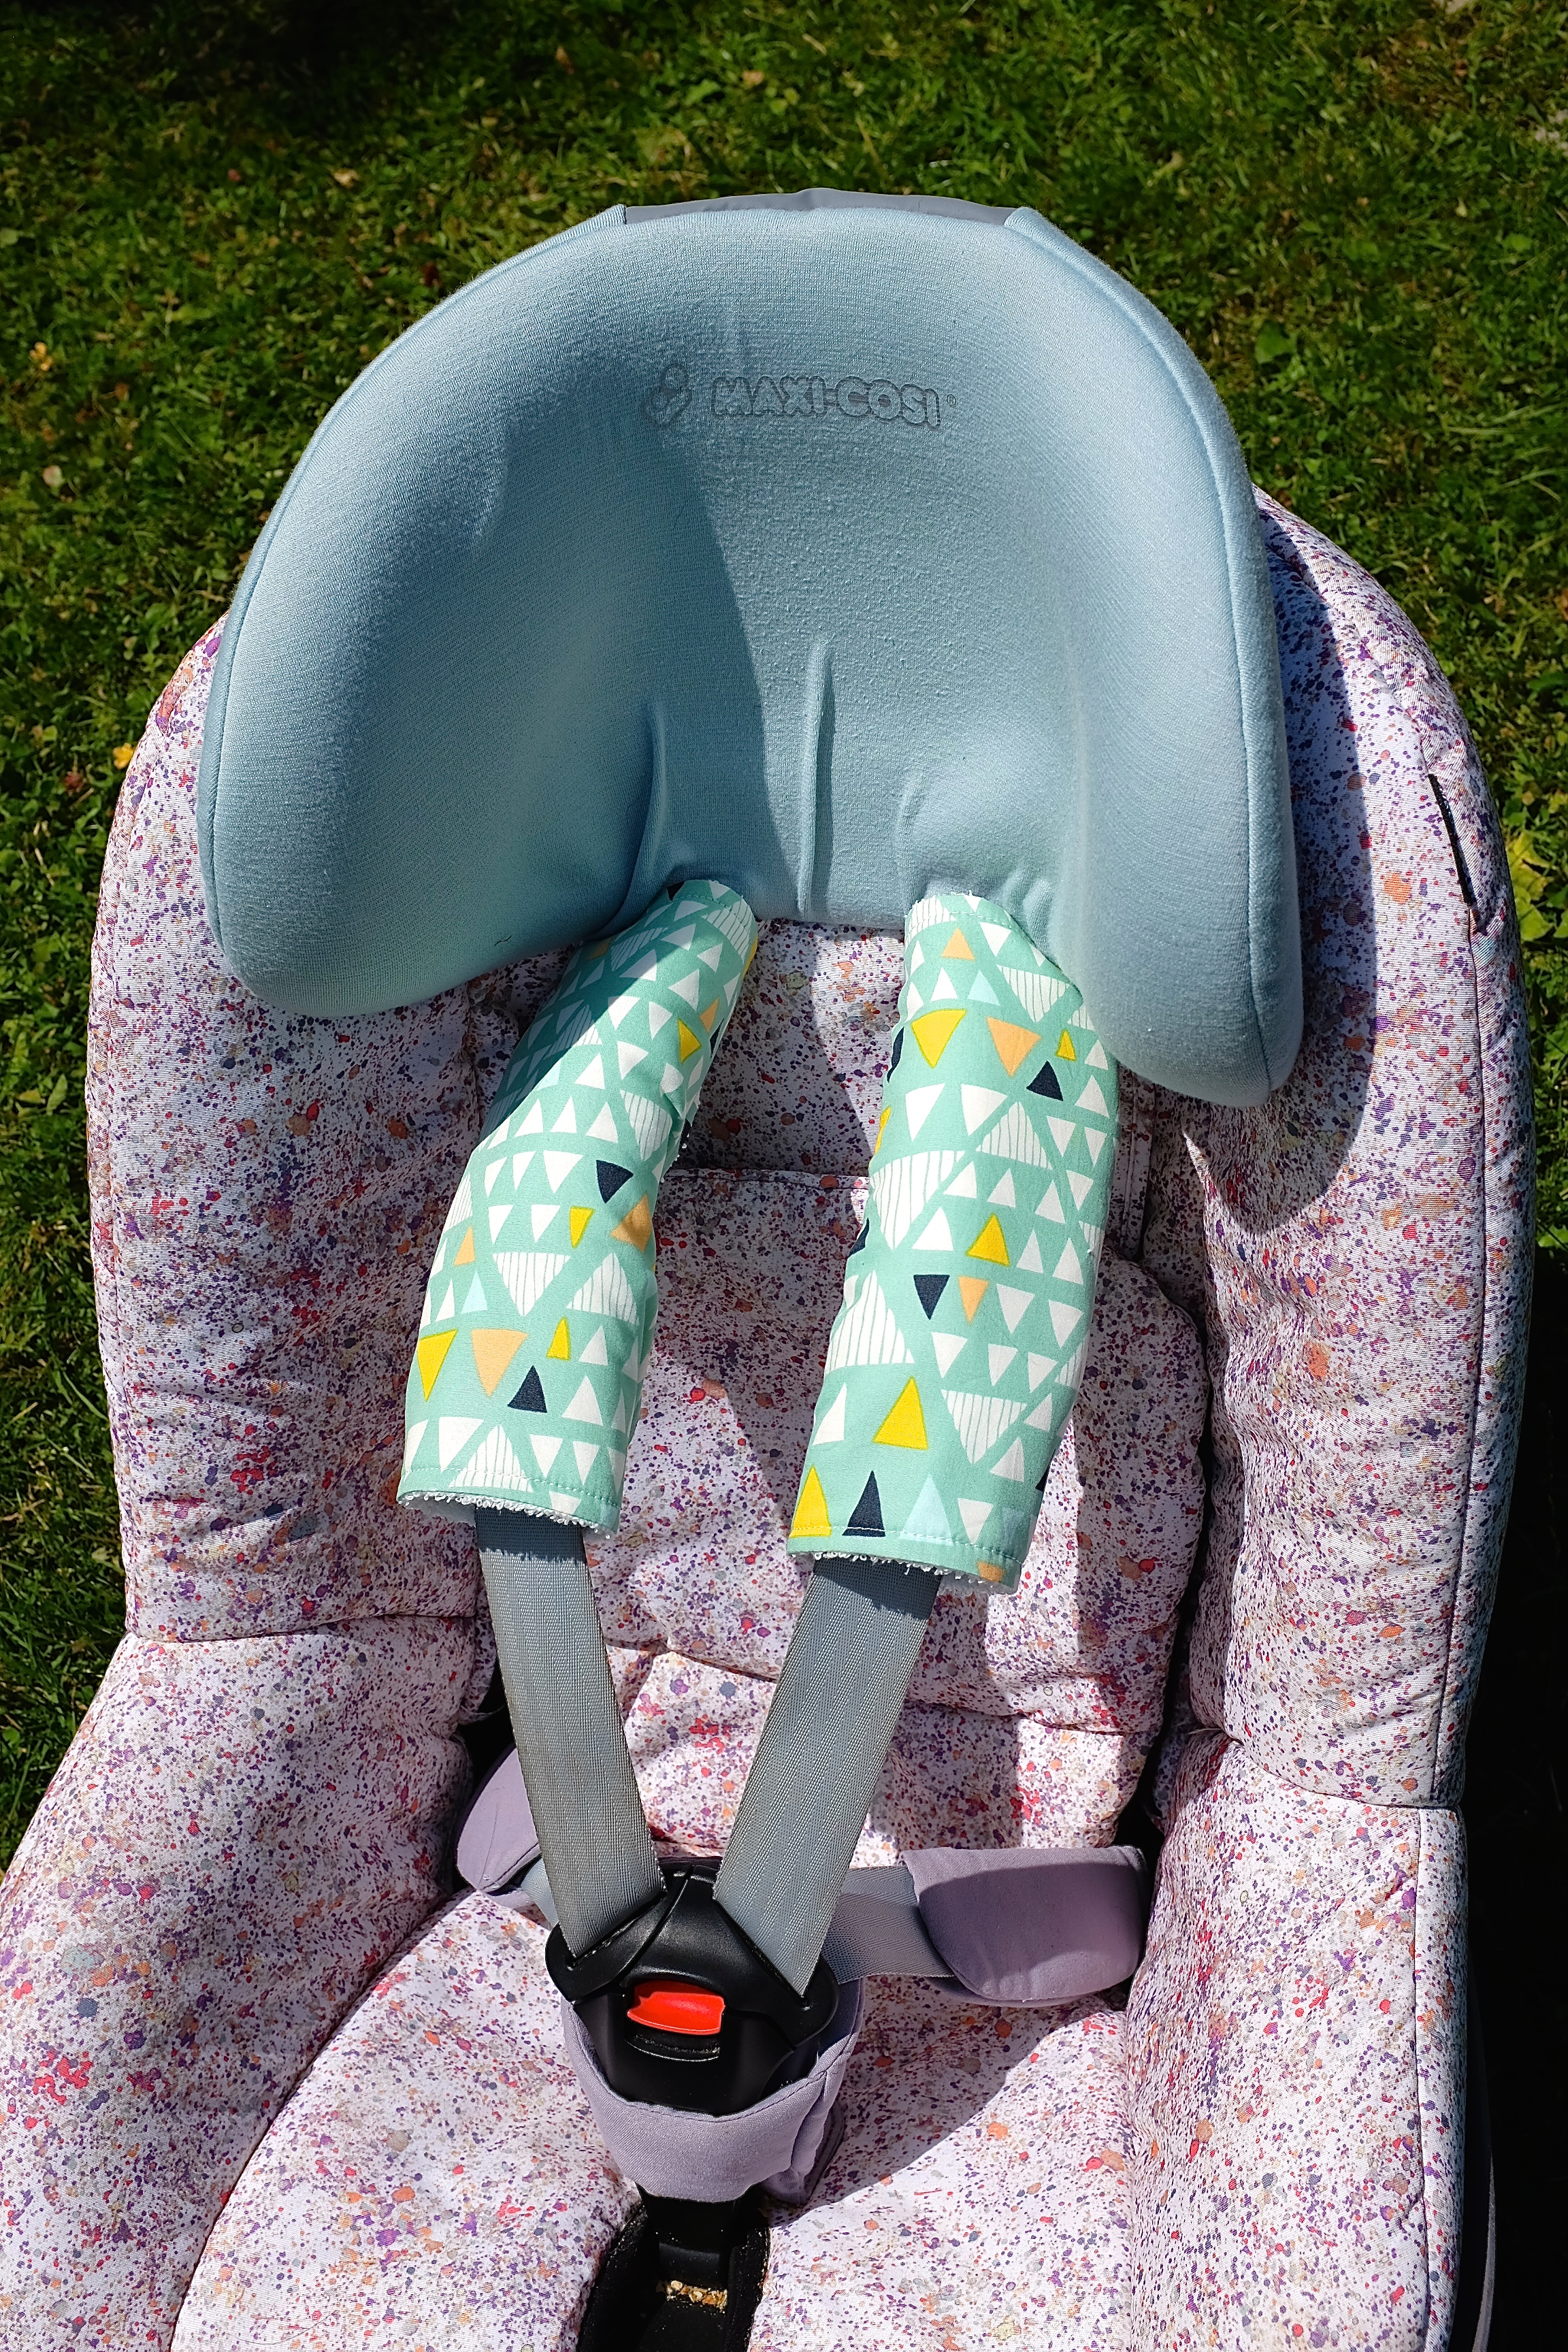 Mojove Car Seat Strap Covers